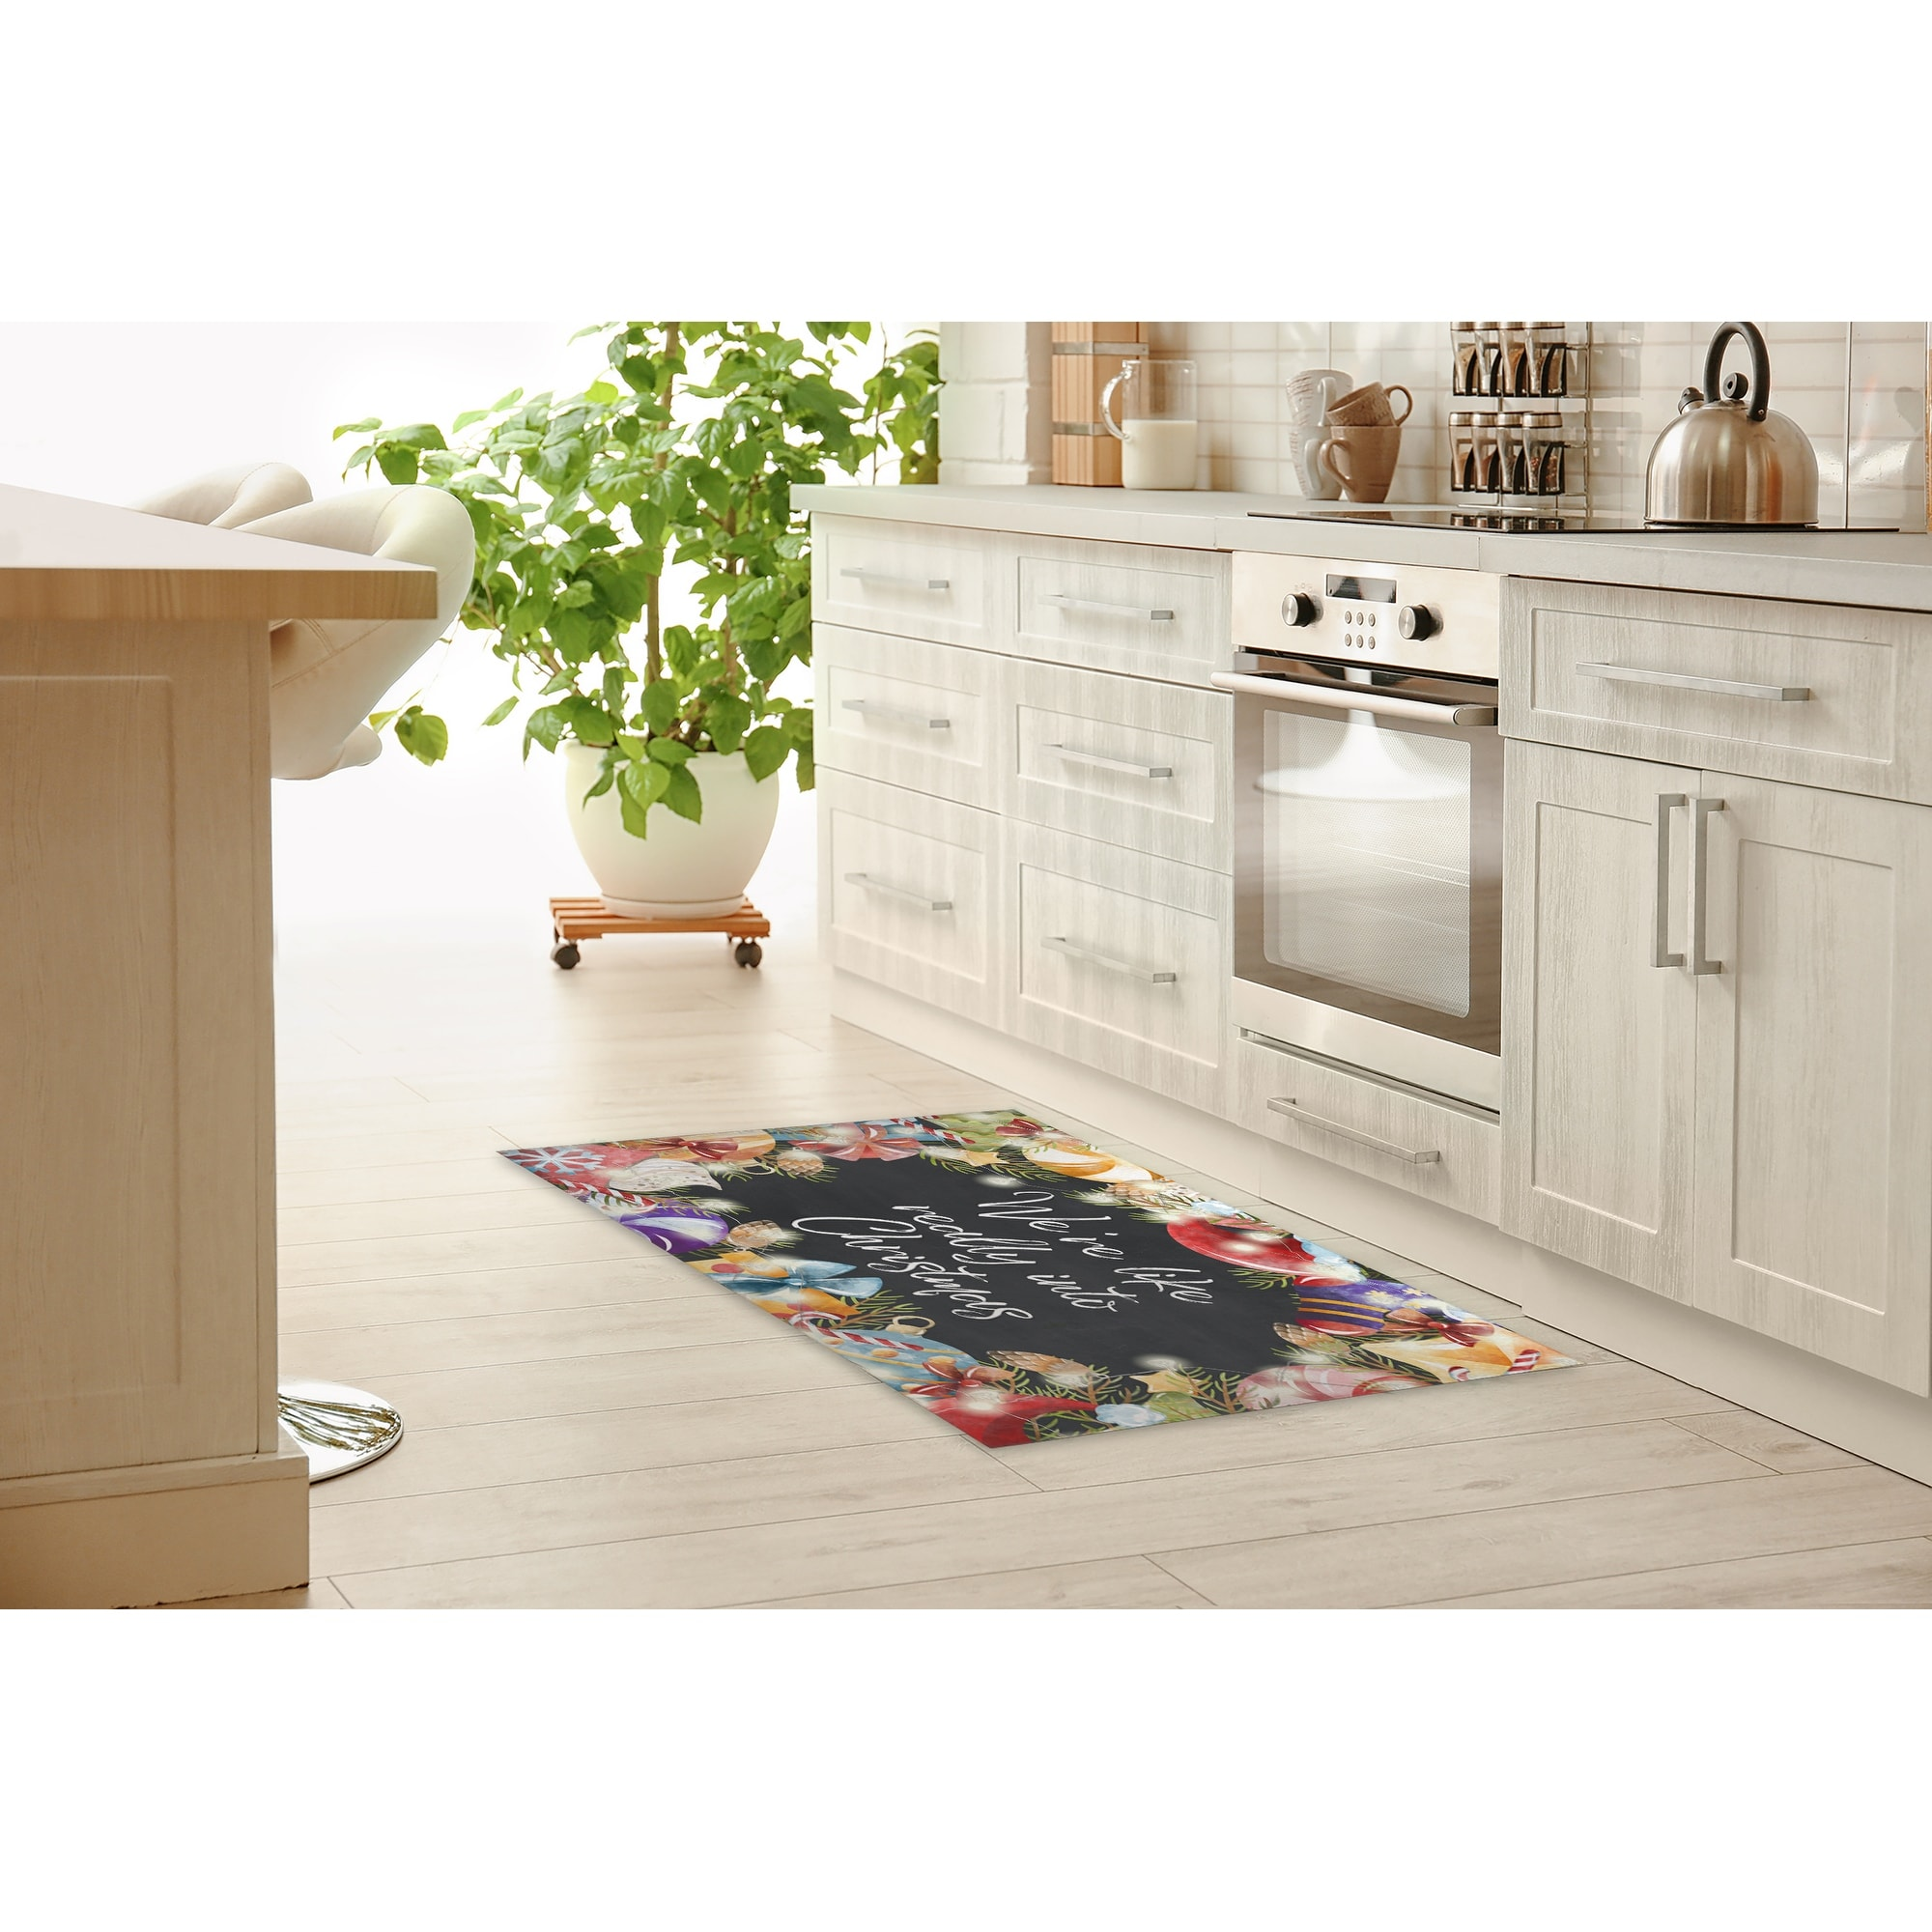 We Re Like Really Into Christmas Kitchen Mat By Kavka Designs Overstock 32224539